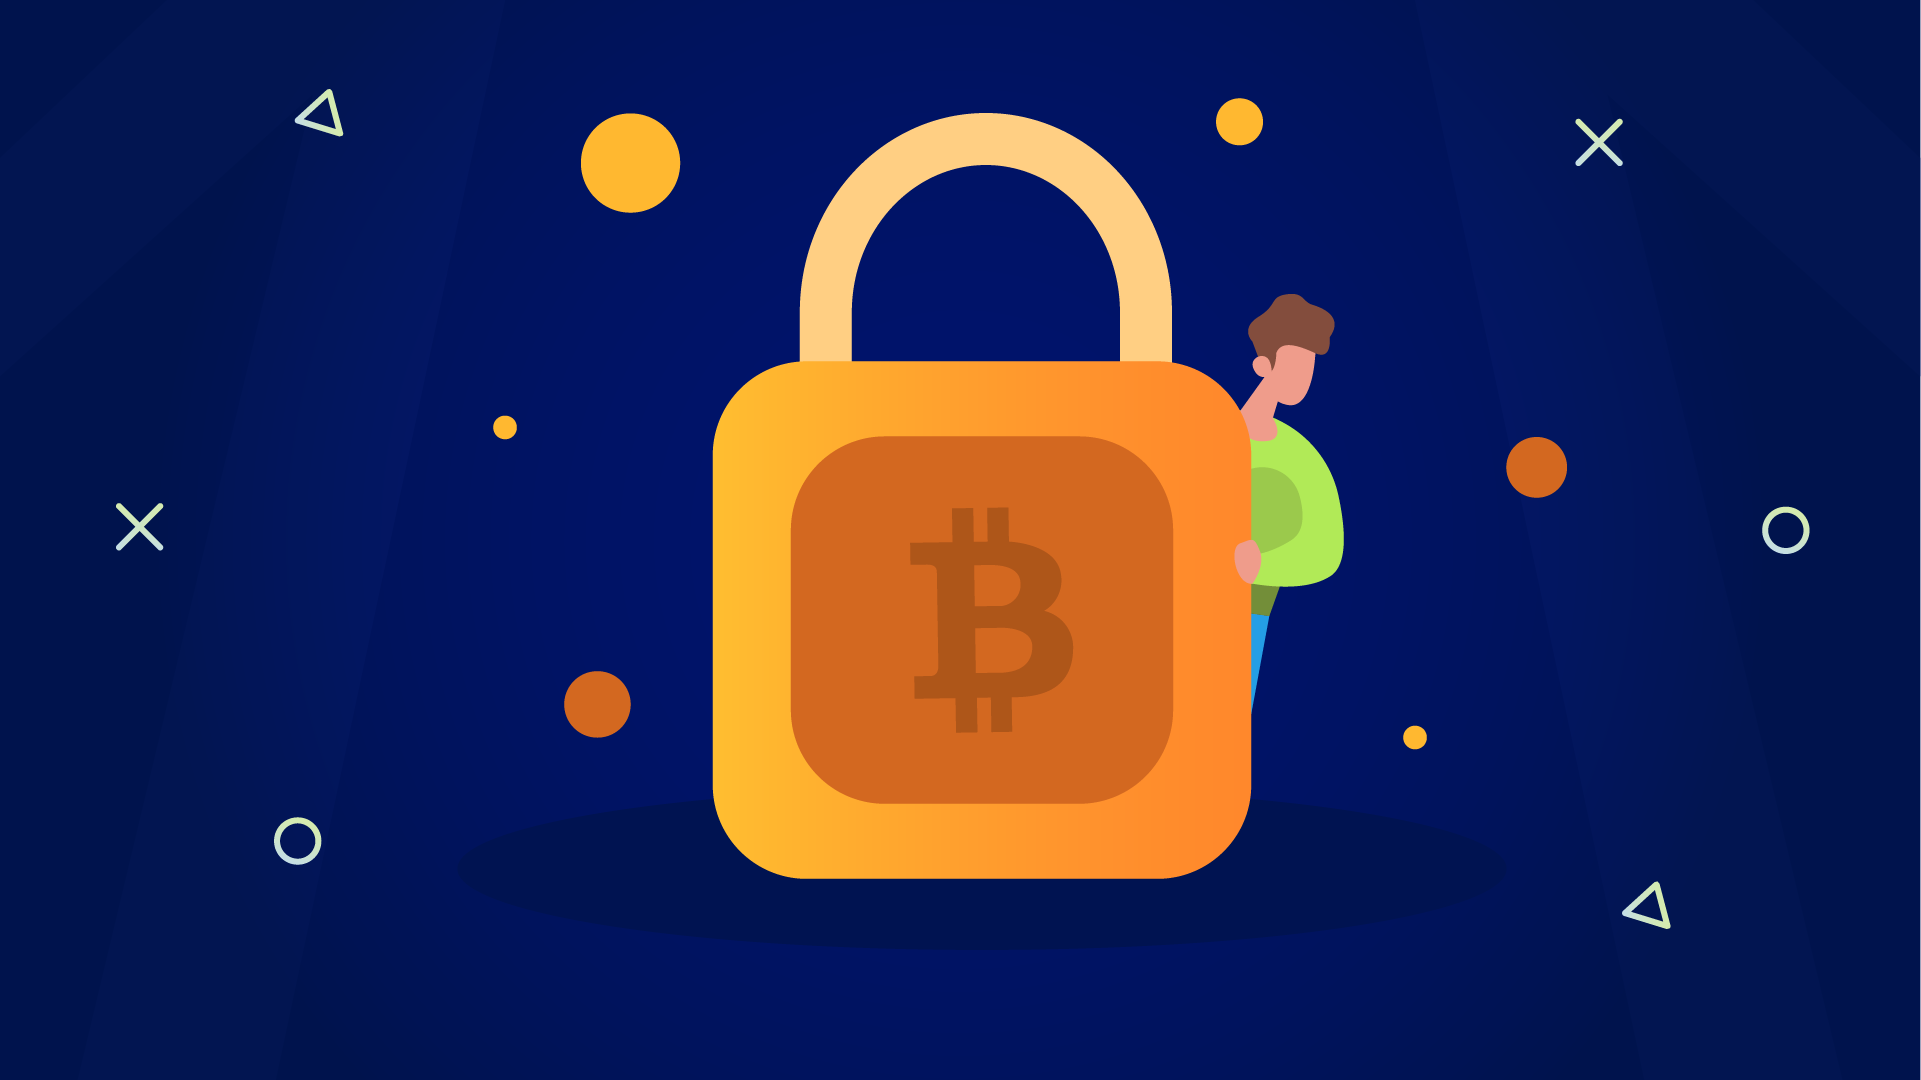 Financial Privacy: The Biggest Weakness for Bitcoin